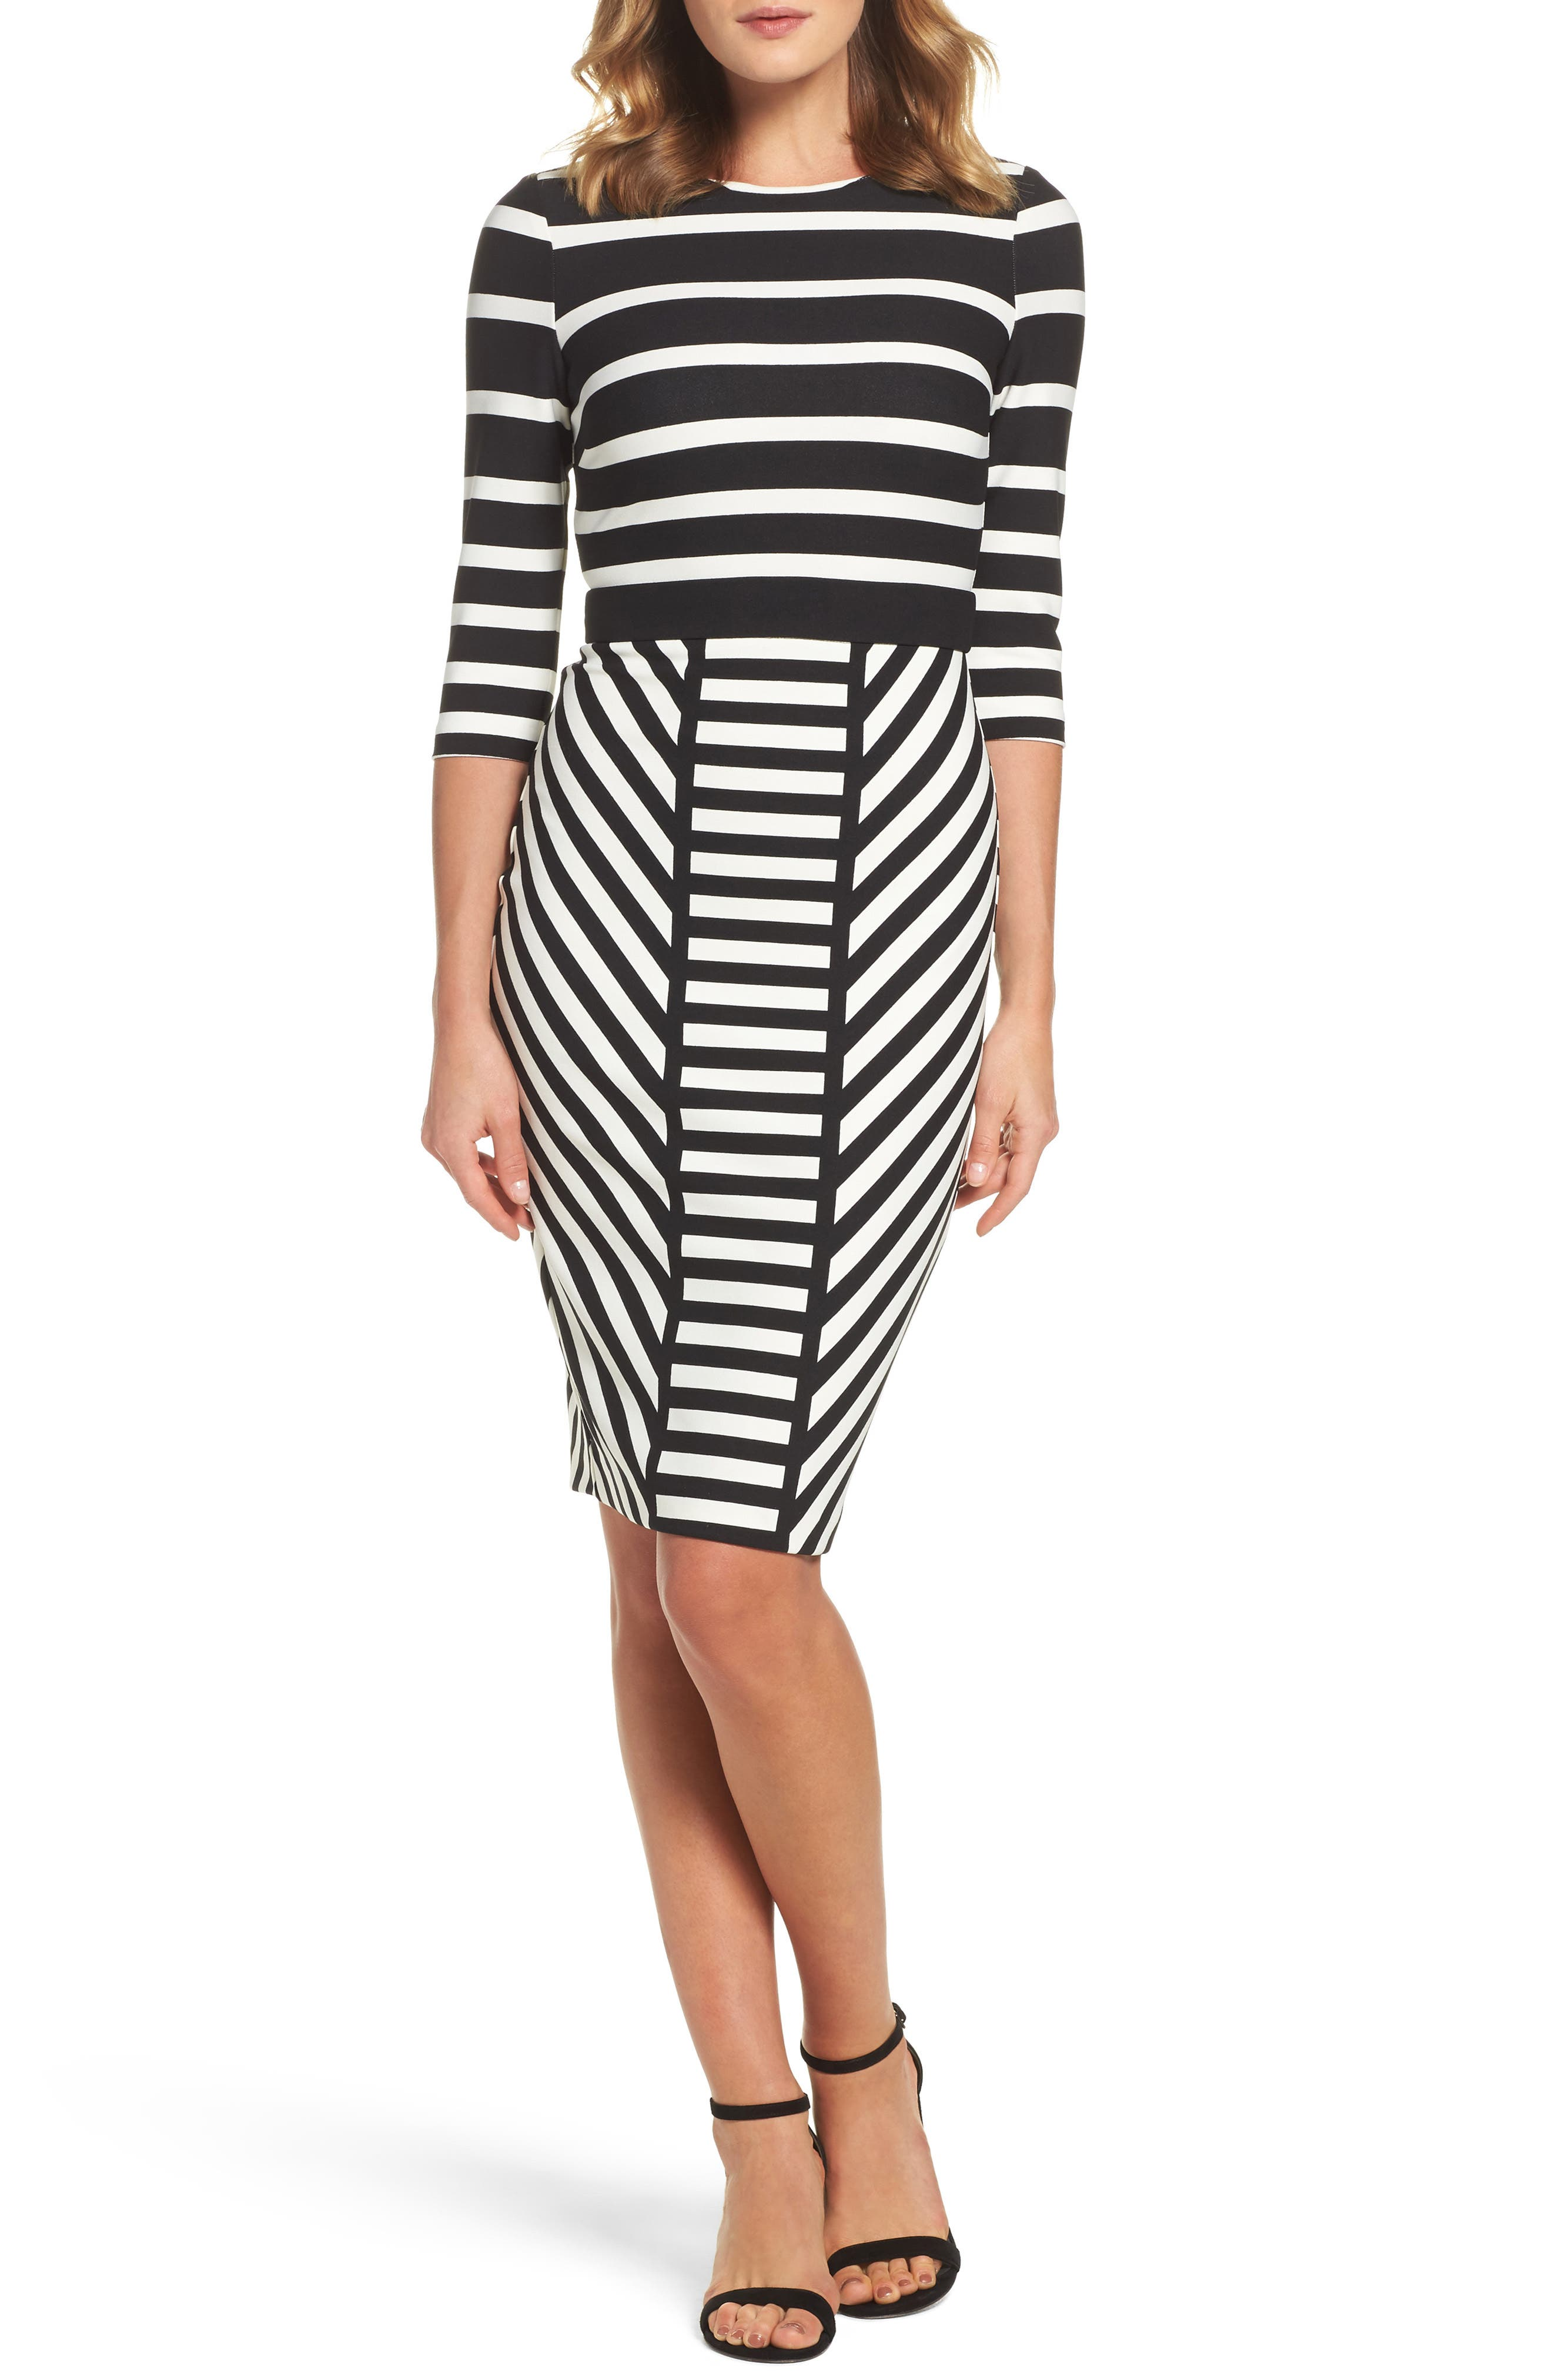 Main Image - Gabby Skye Stripe Sheath Dress